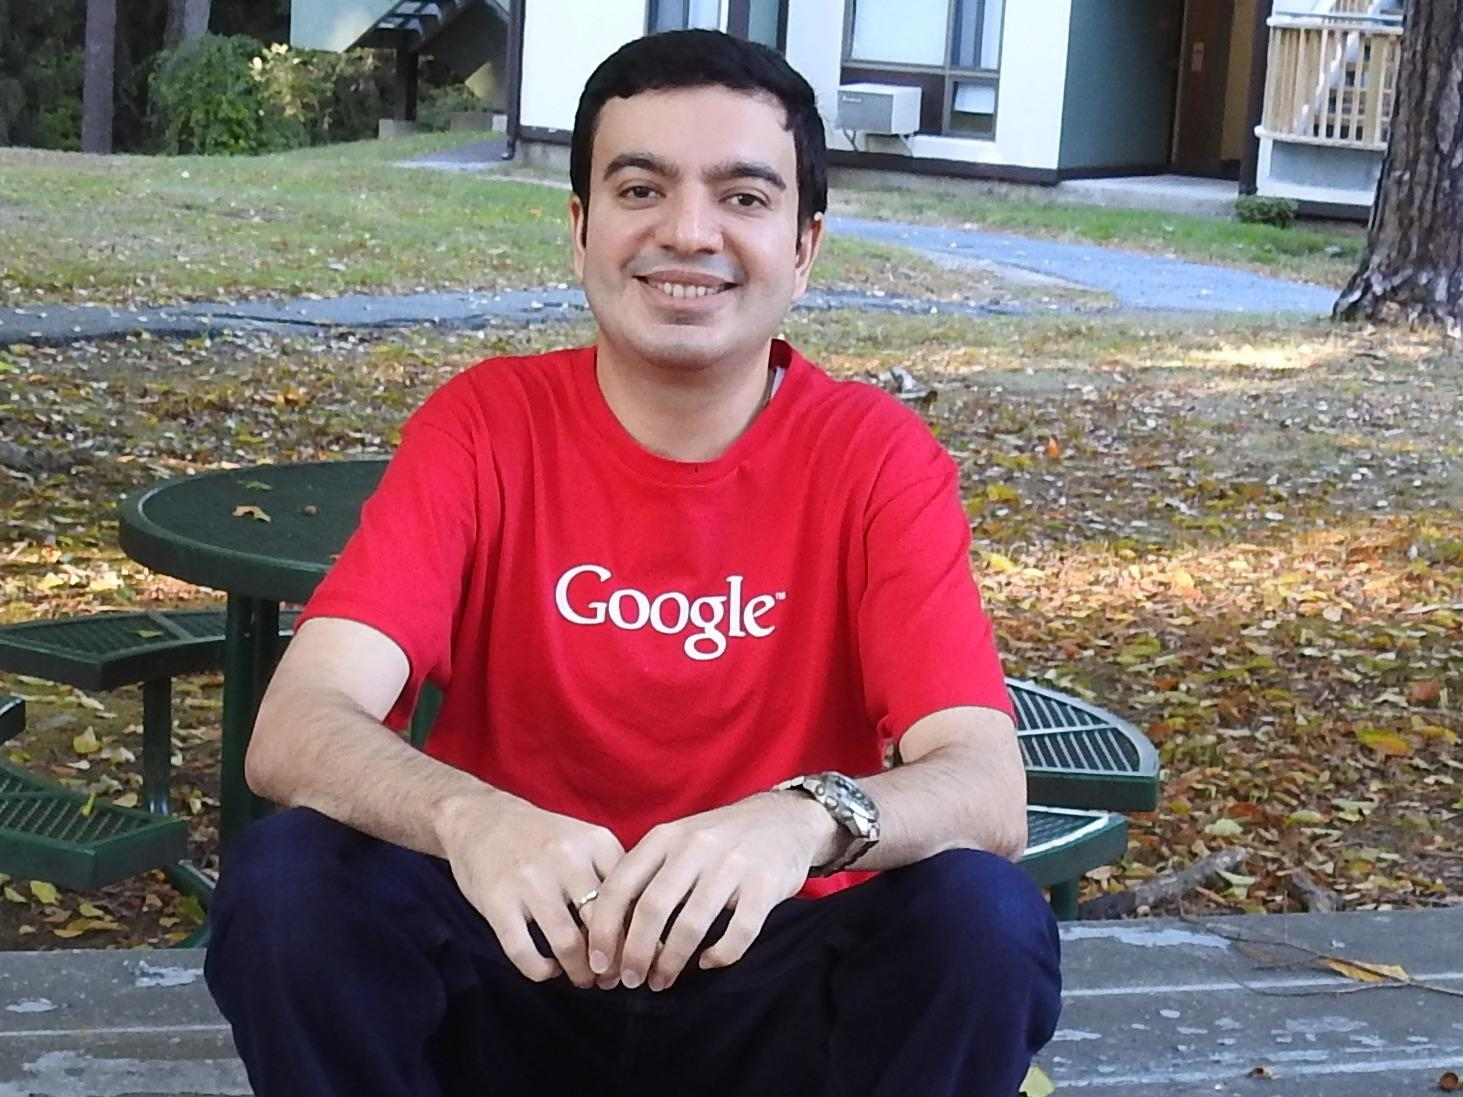 Google rewarded the guy who bought Google.com, and he donated it all to charity